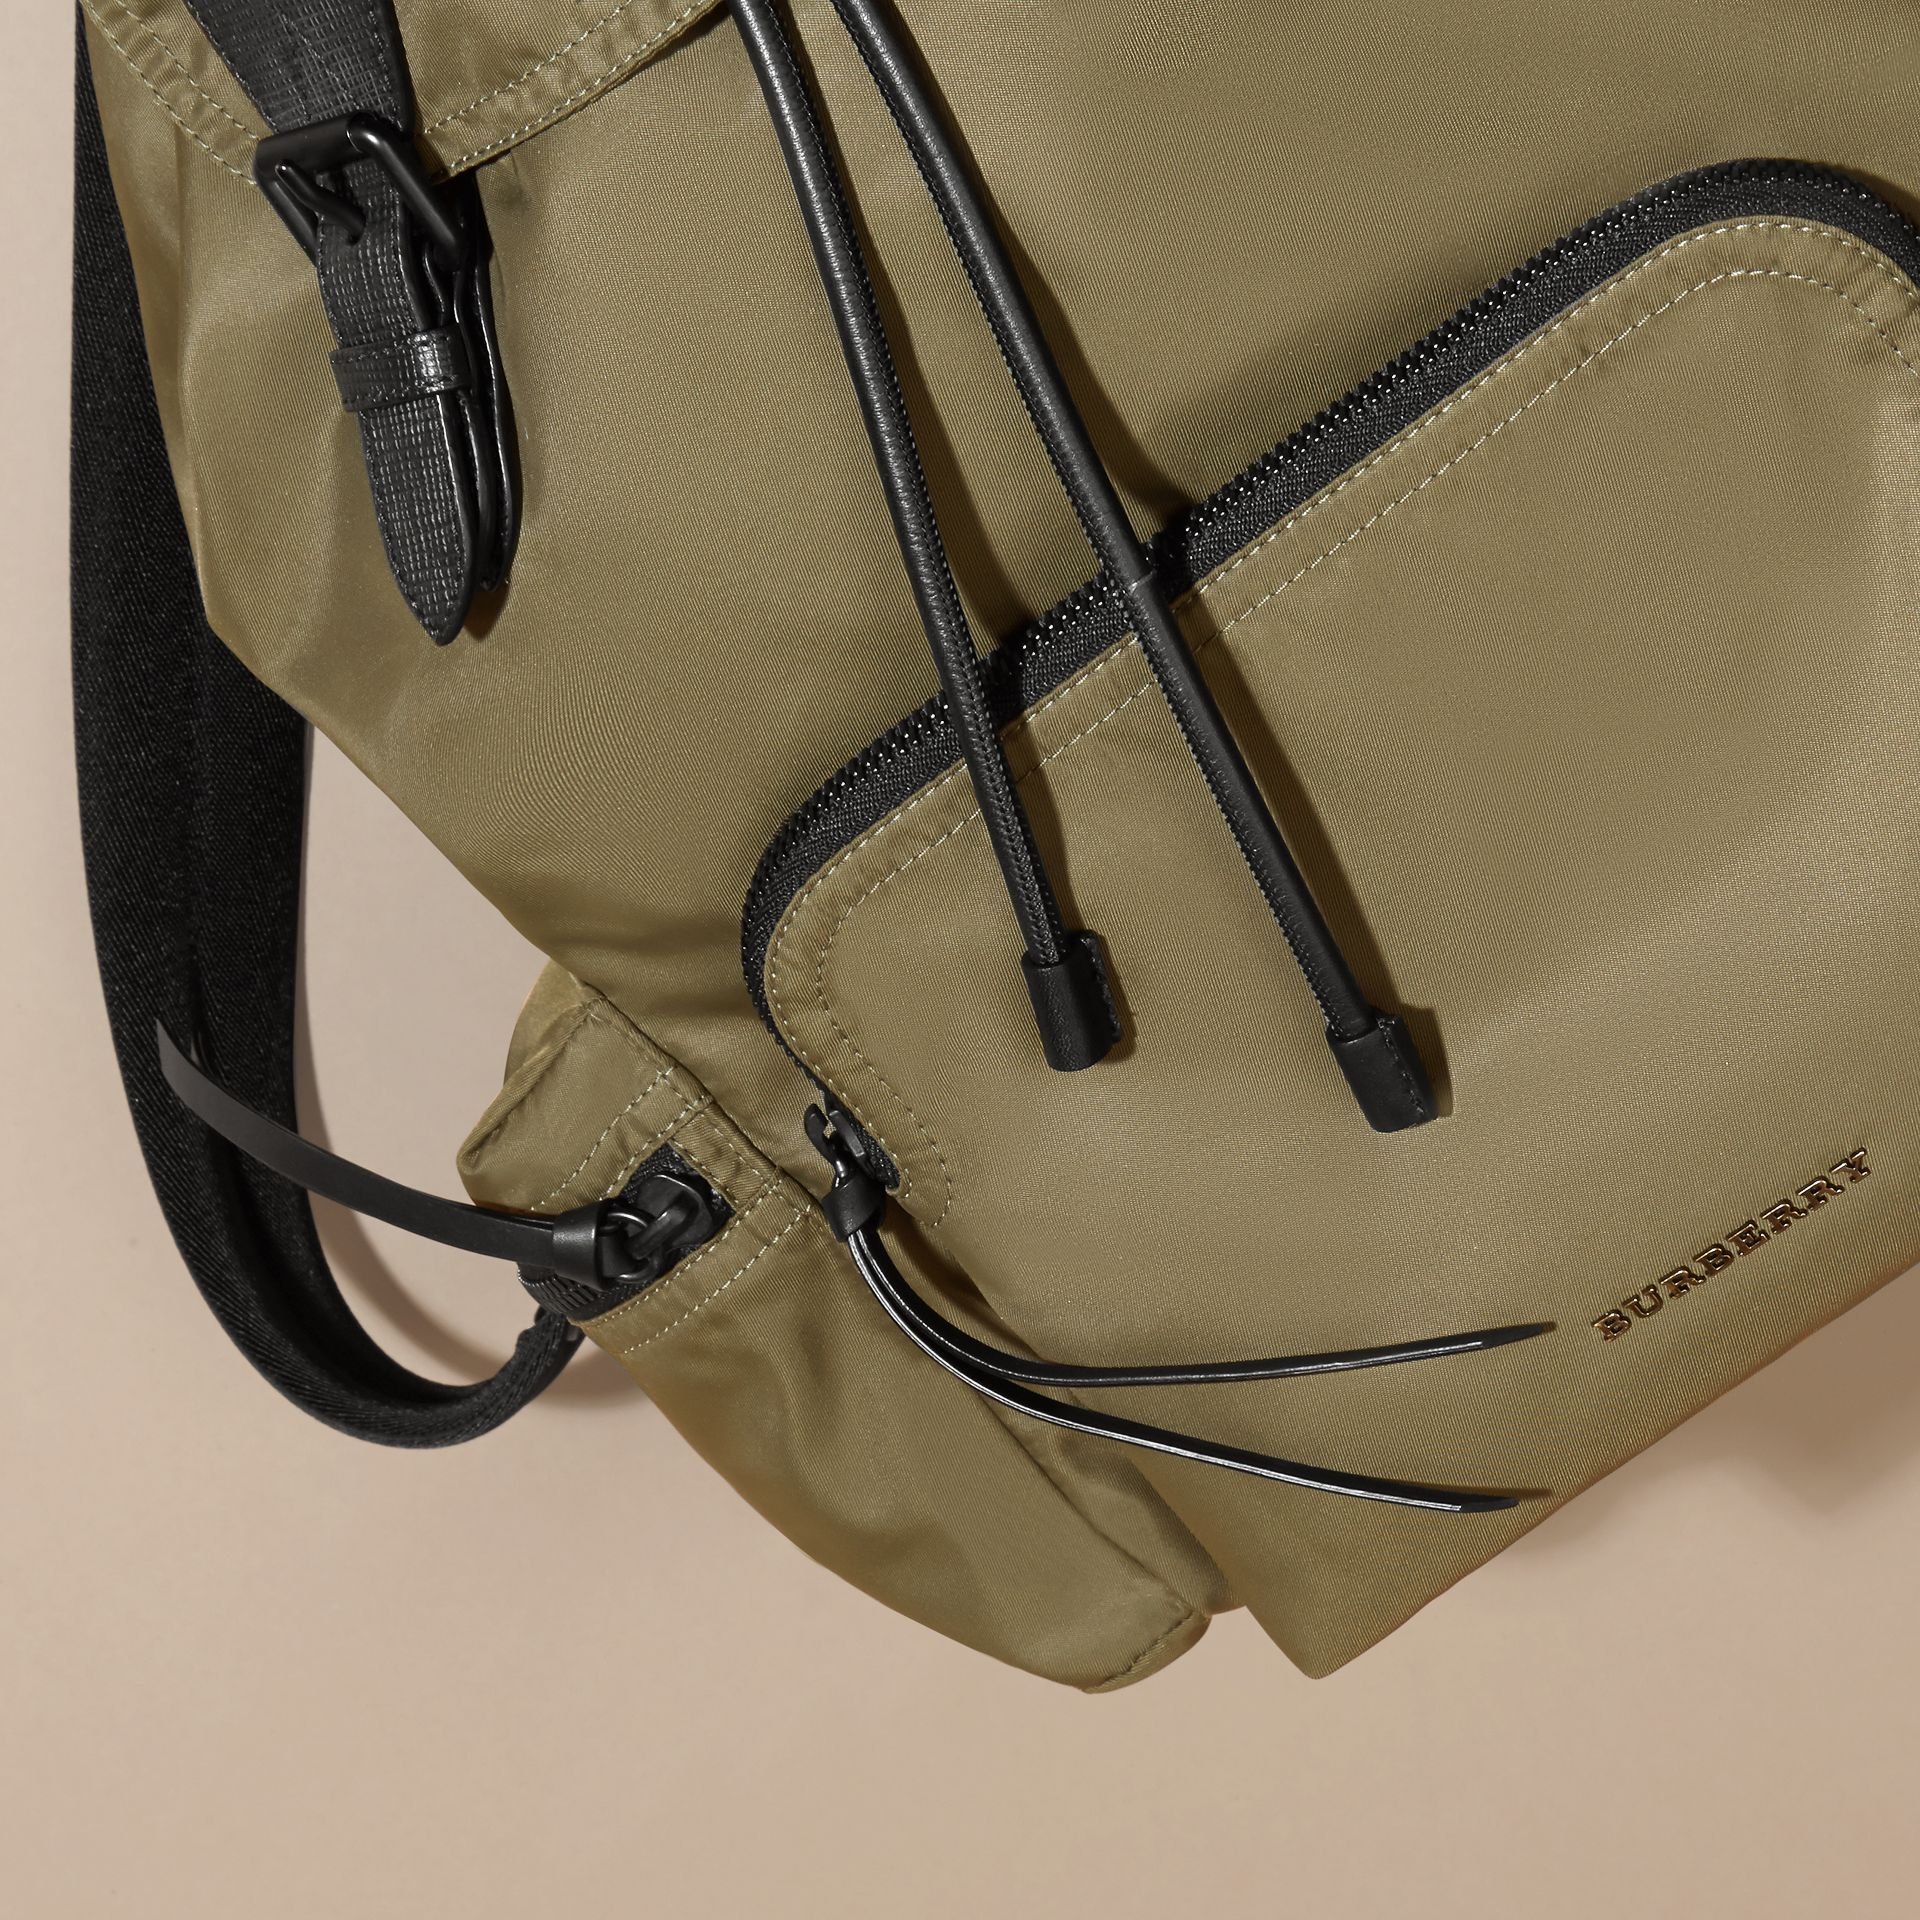 Canvas green The Large Rucksack in Technical Nylon and Leather Canvas Green - gallery image 7